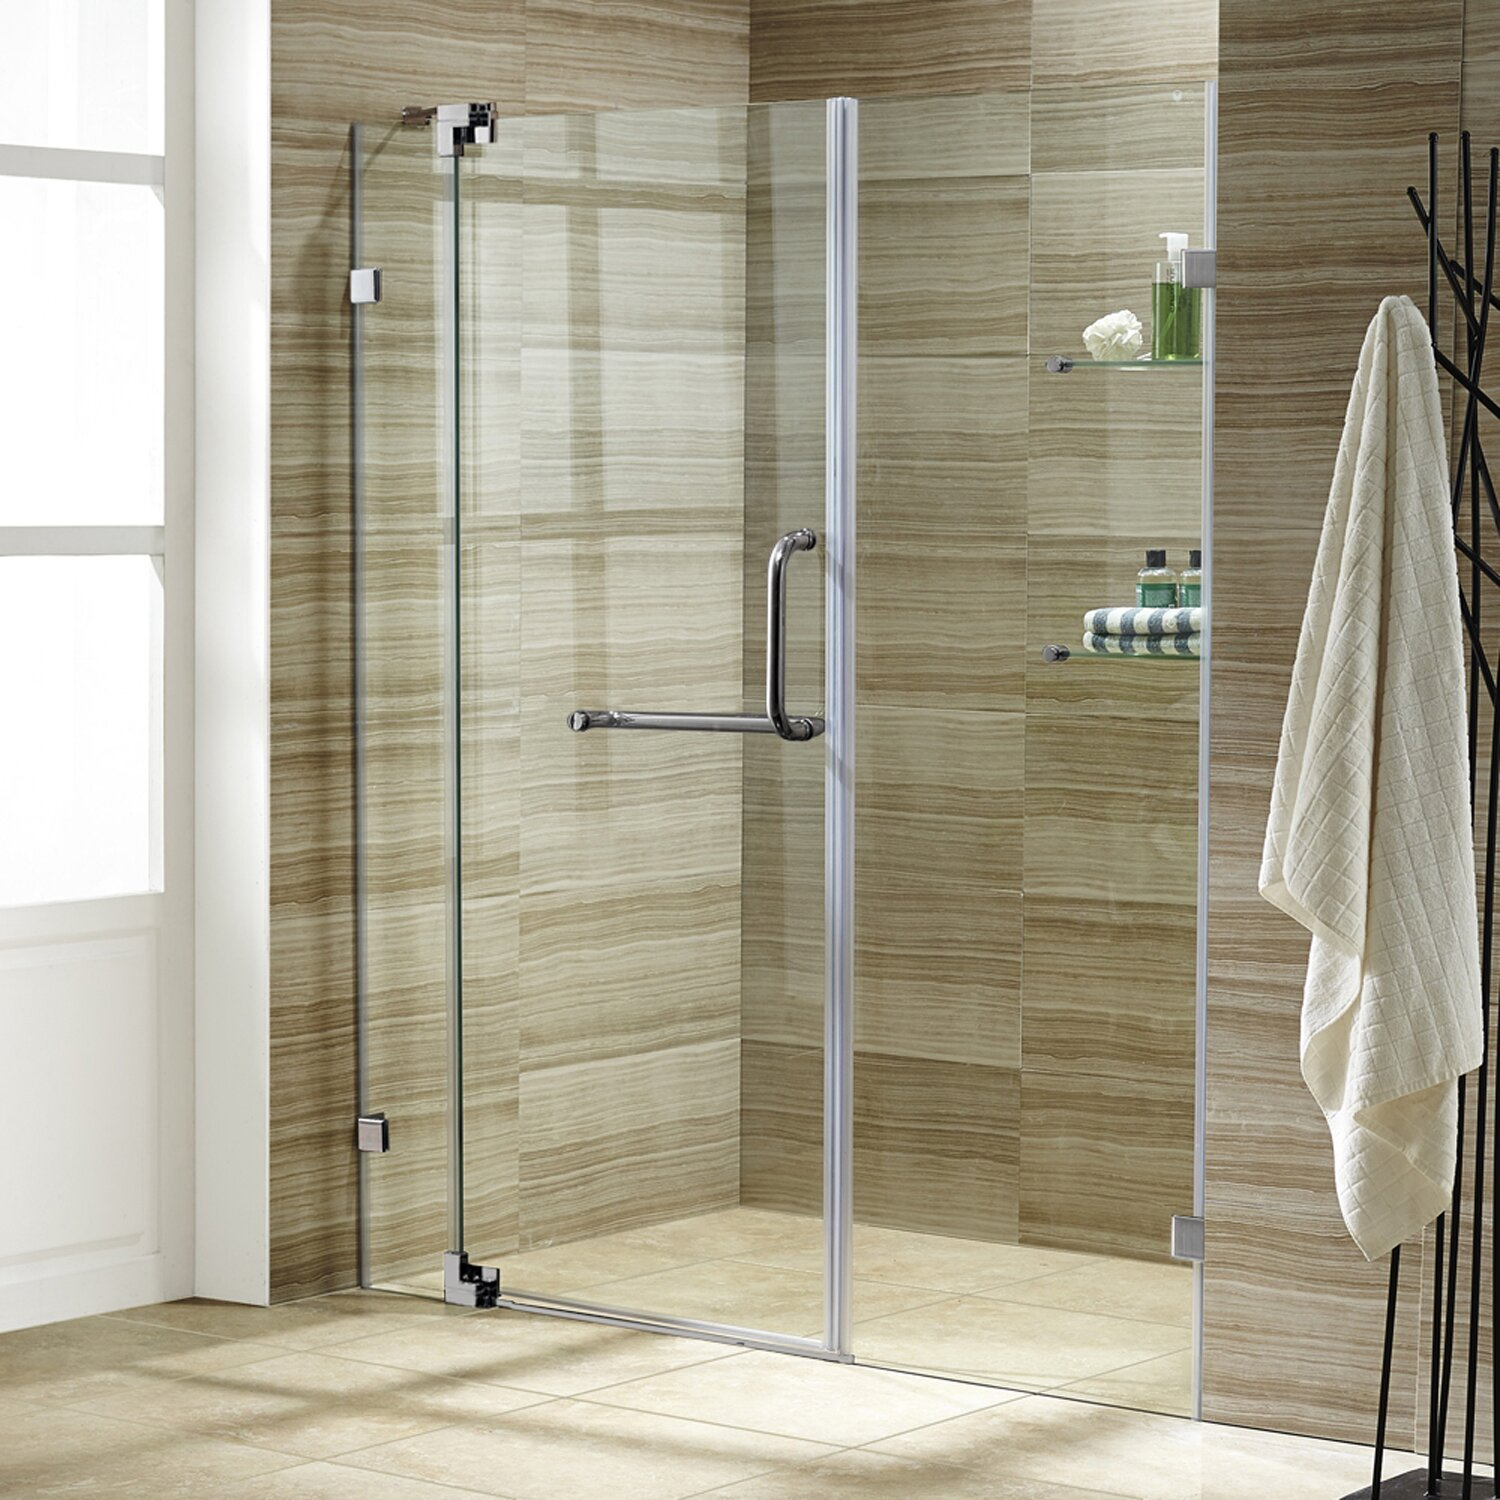 Bathroom shower doors frameless - Pirouette 60 X 72 Pivot Frameless Shower Door